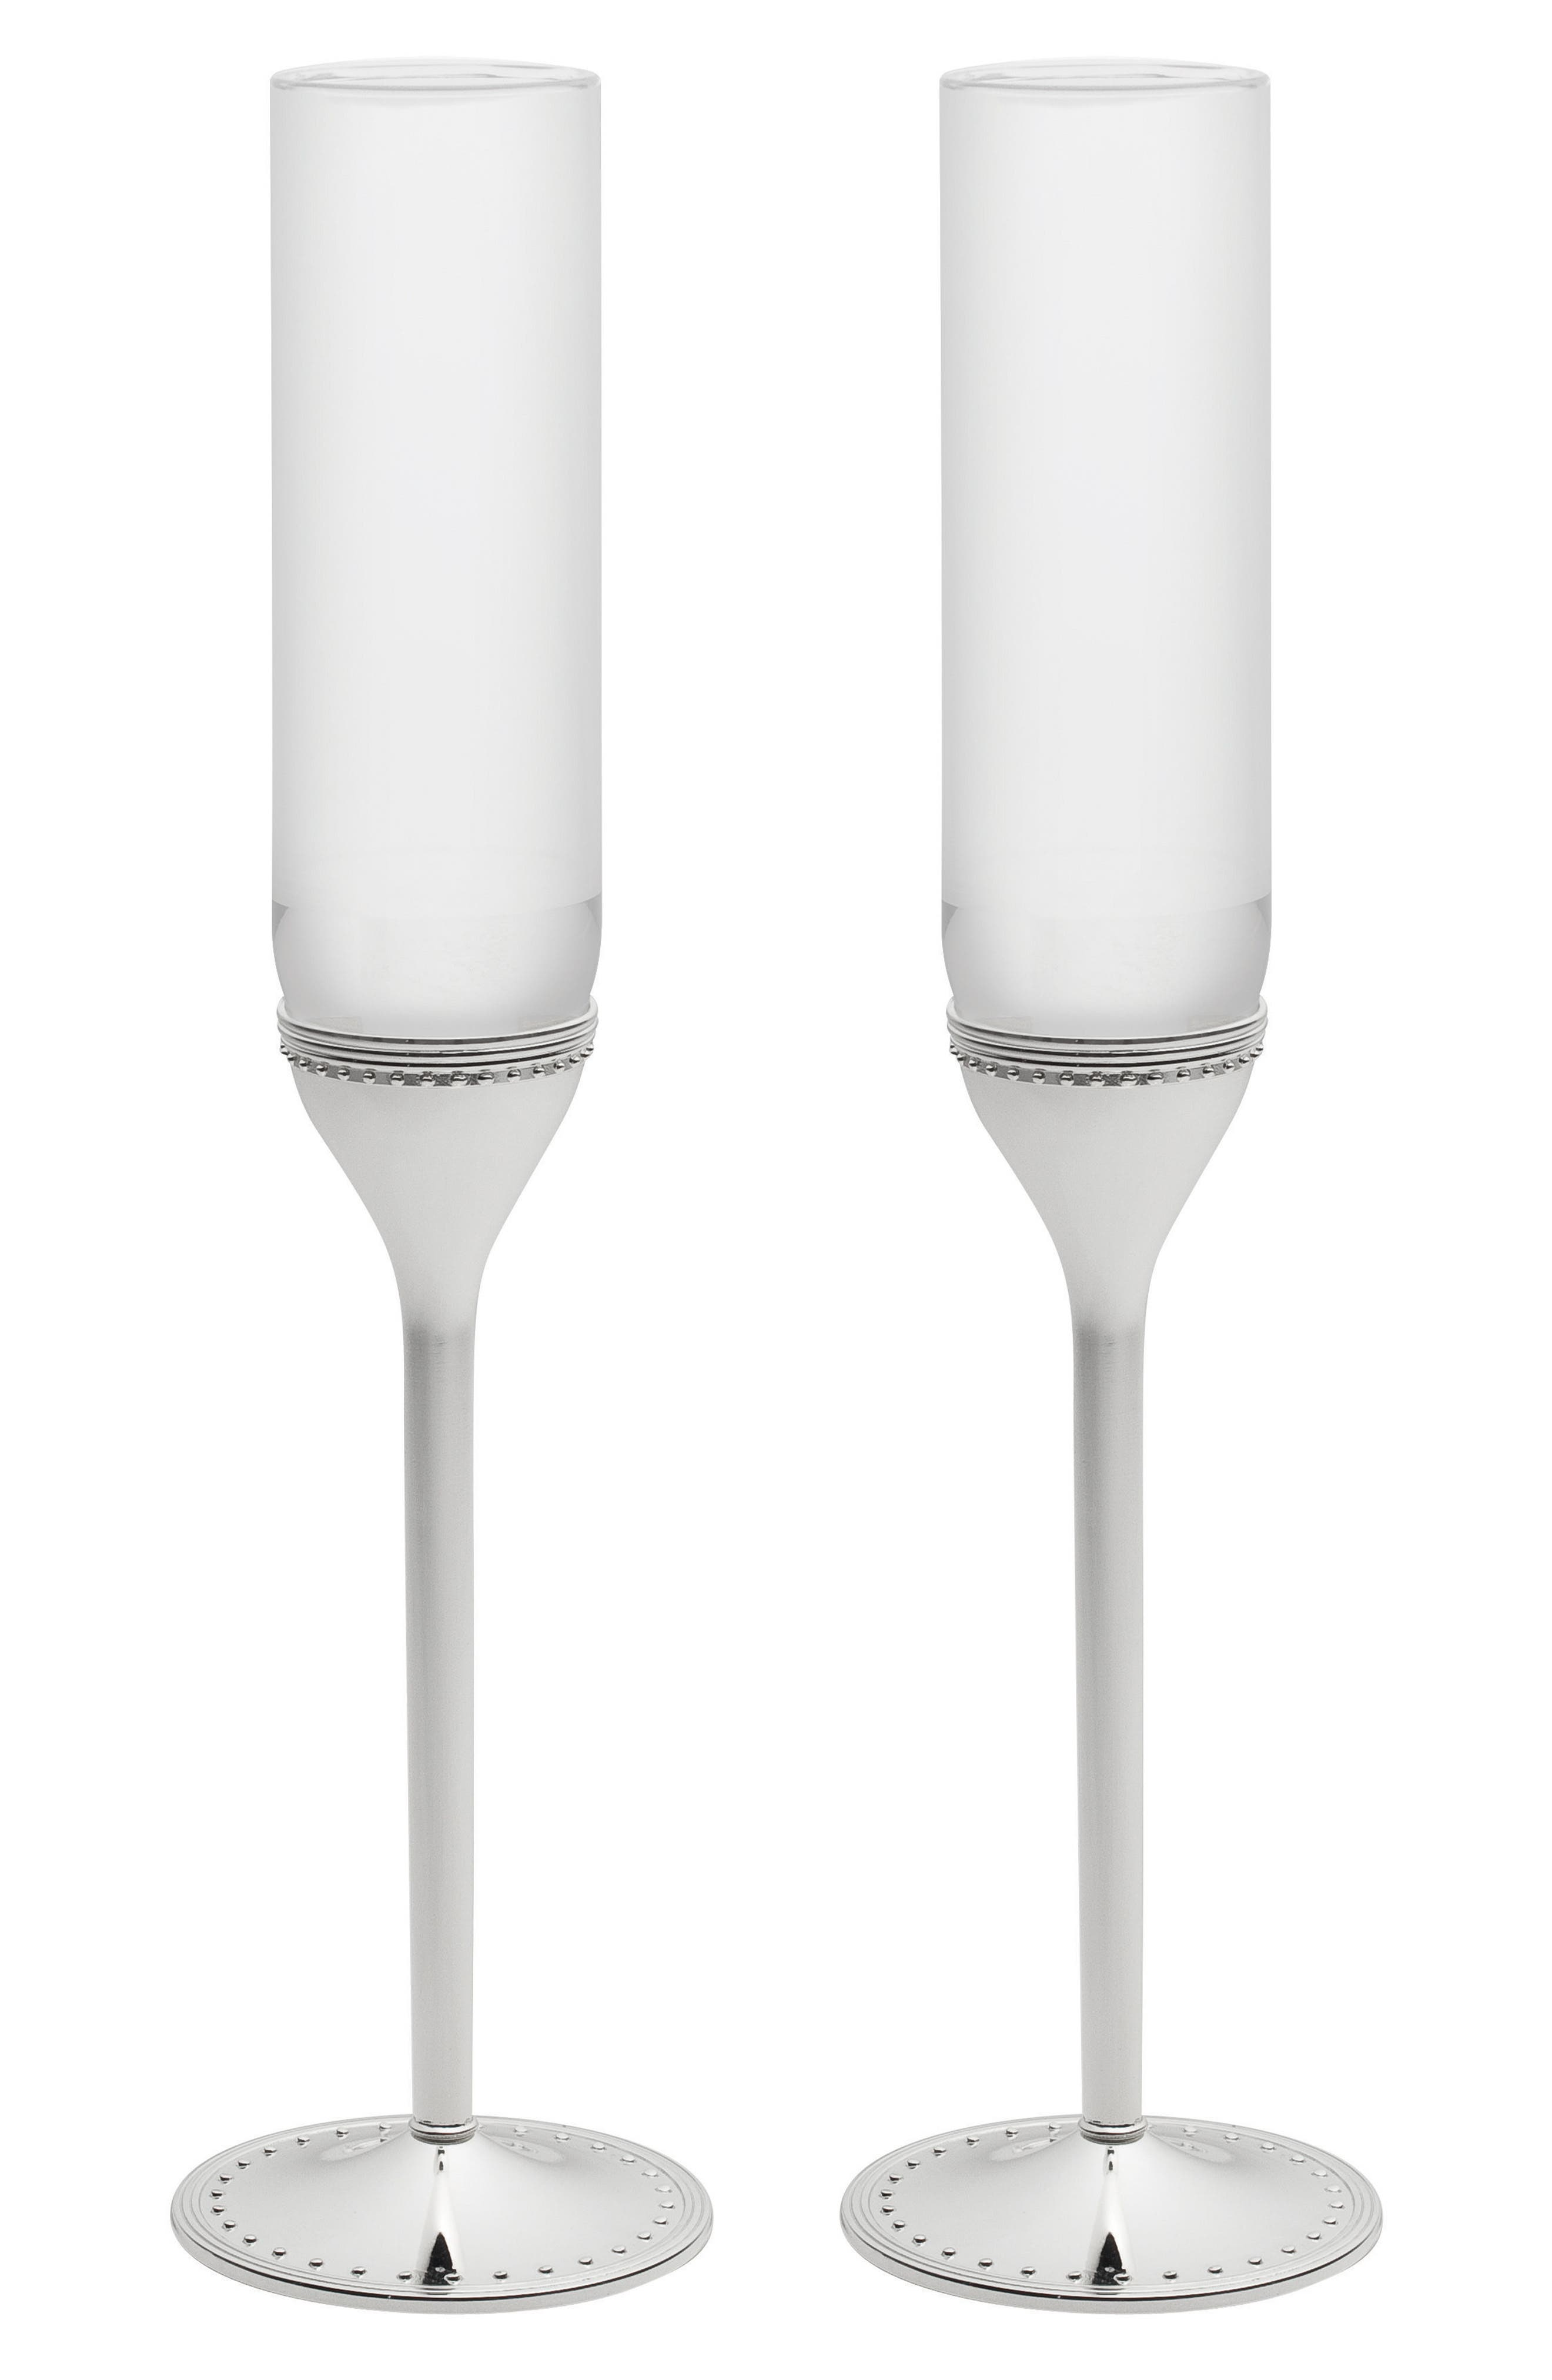 Vera Wang x Wedgwood Grosgrain Set of 2 Toasting Flutes